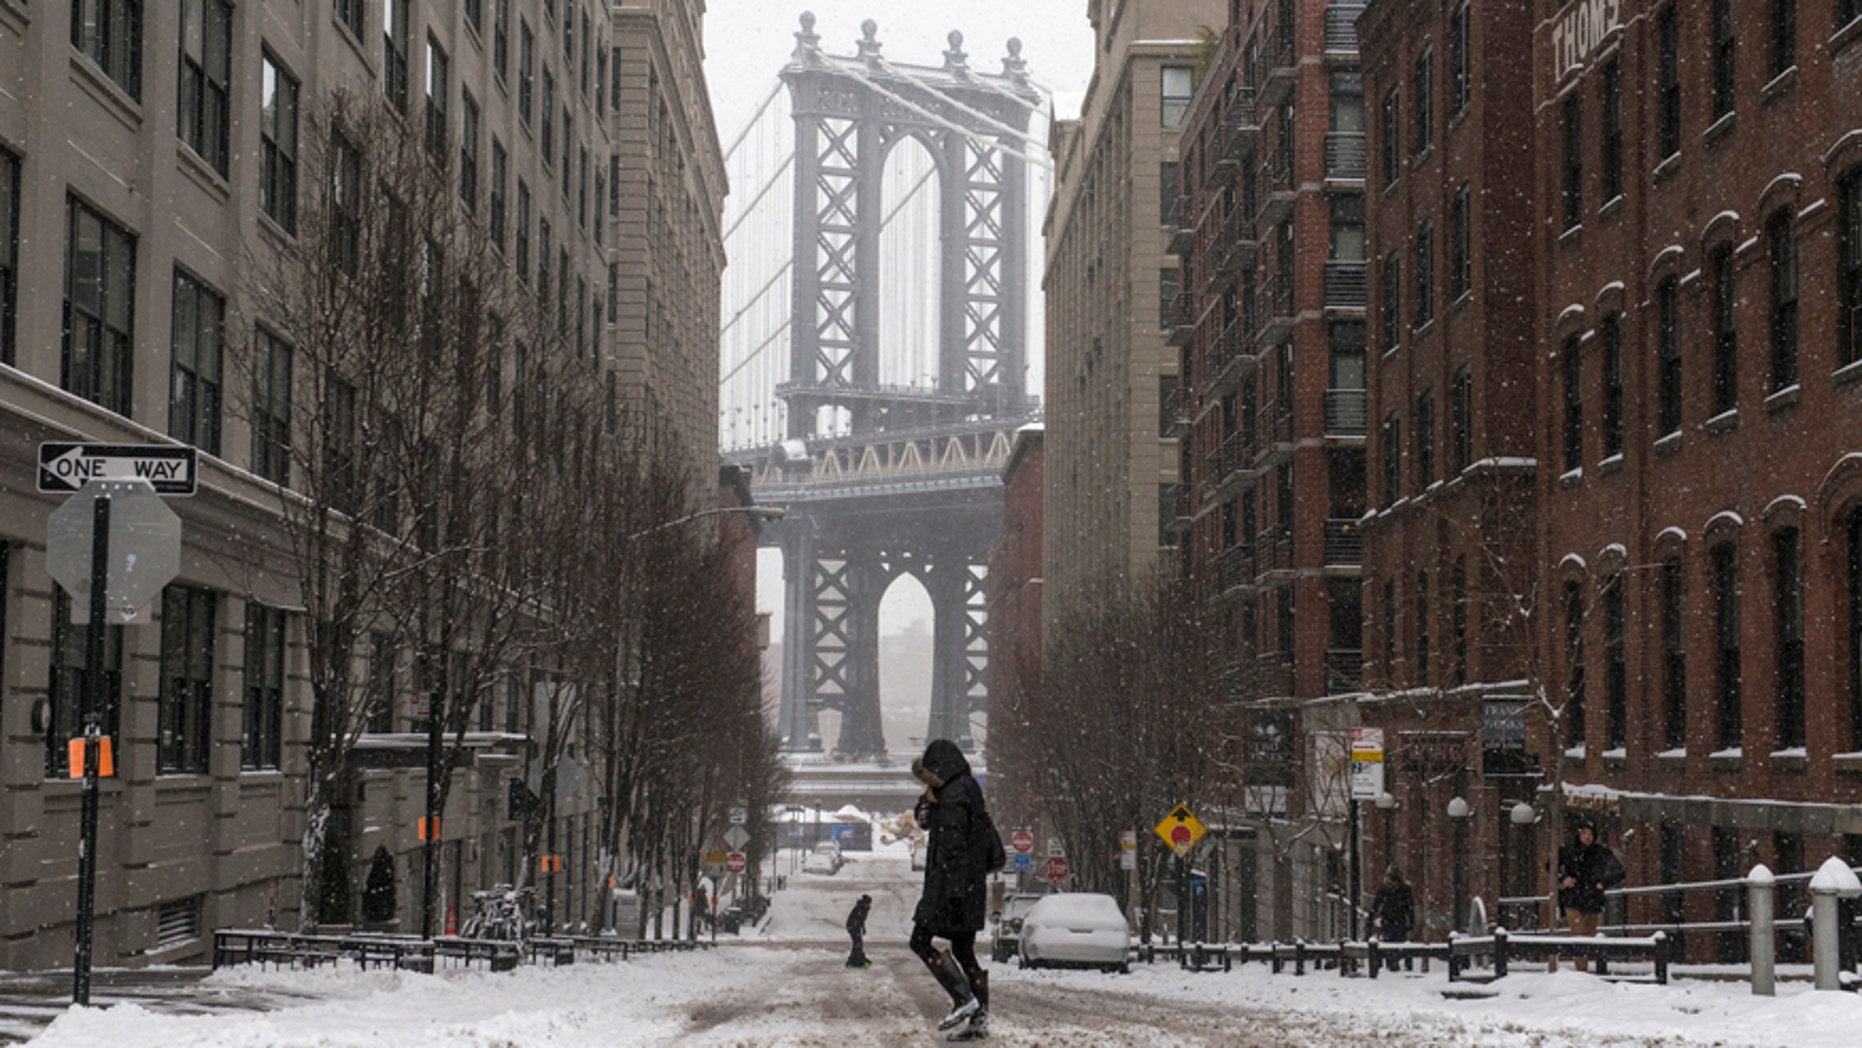 The Manhattan Bridge is seen in the background as commuters make their way through the streets of Dumbo after a snow storm in New York Jan. 27, 2015.